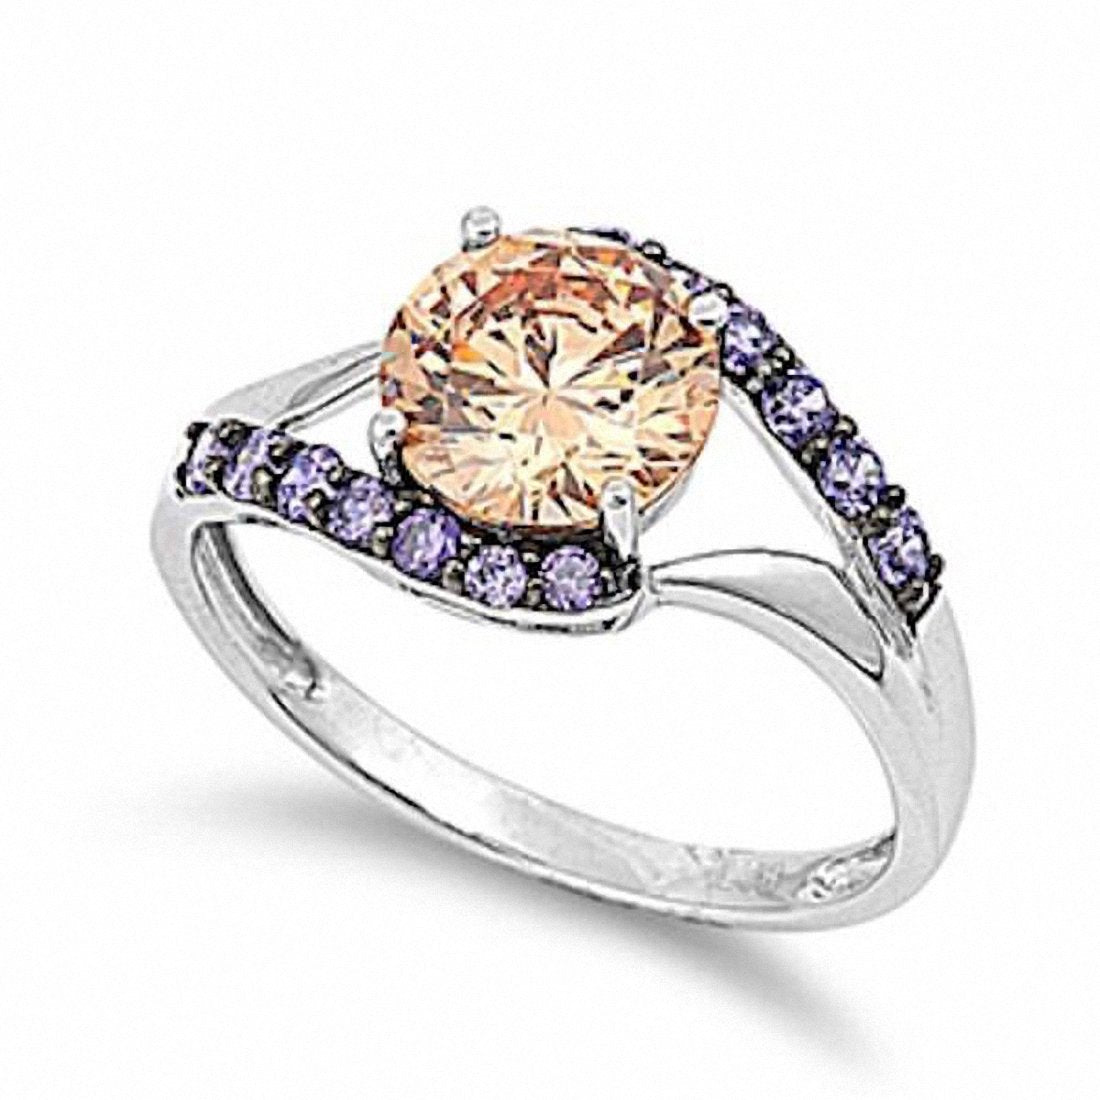 Solid 925 Sterling Silver Beautiful 2.50 Carat Round Amber Amethyst Fashion Ladies Promise Ring Lovely Gift Size 2-14